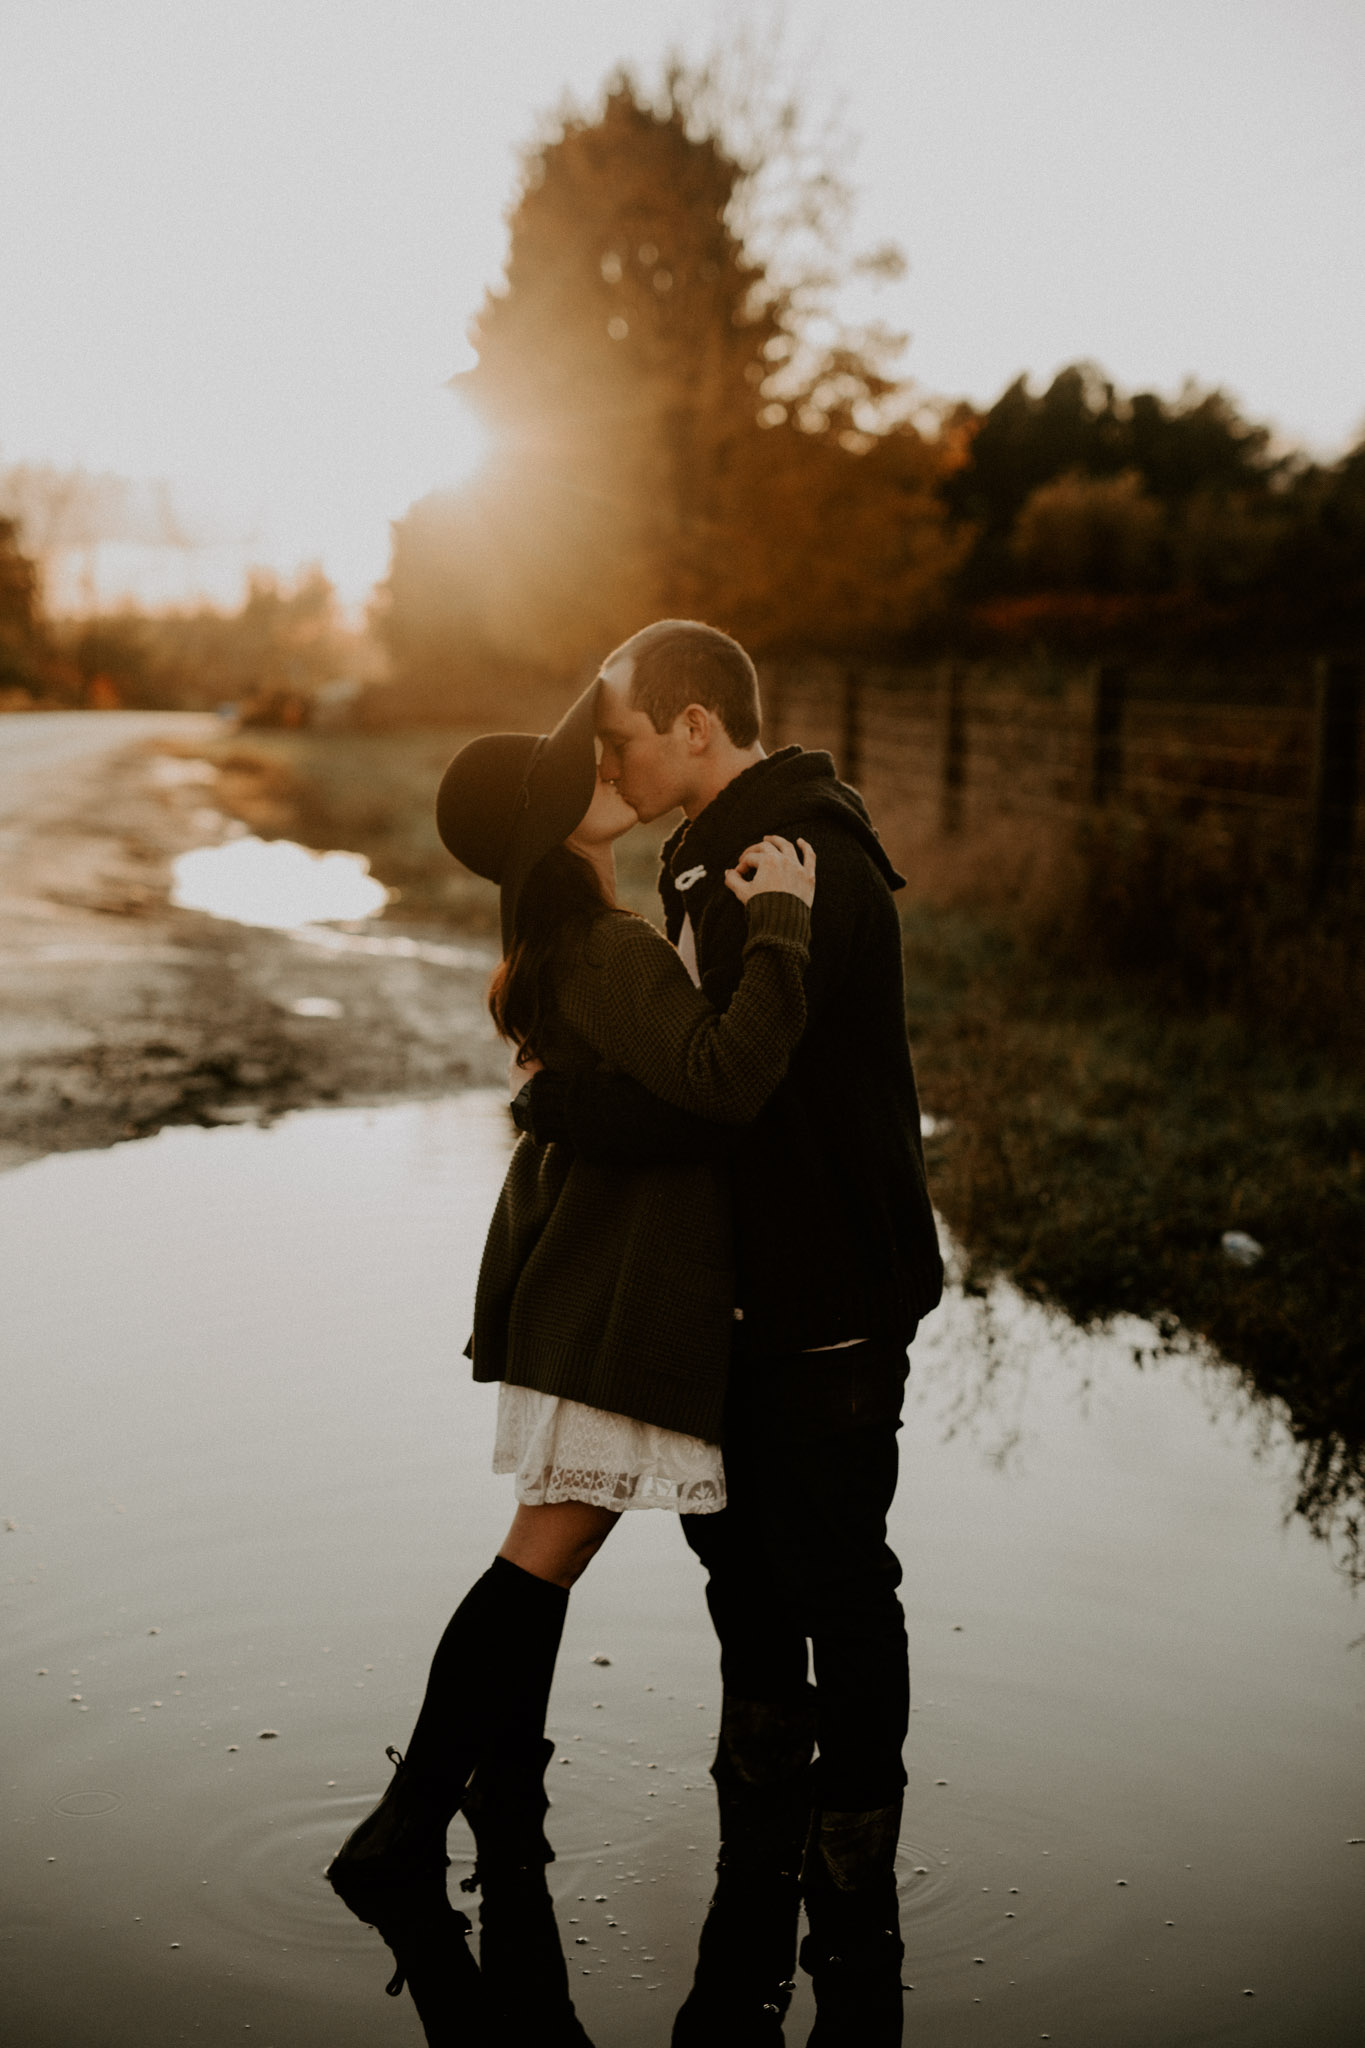 Sunset Fall Engagement Session After the Rain - Toronto